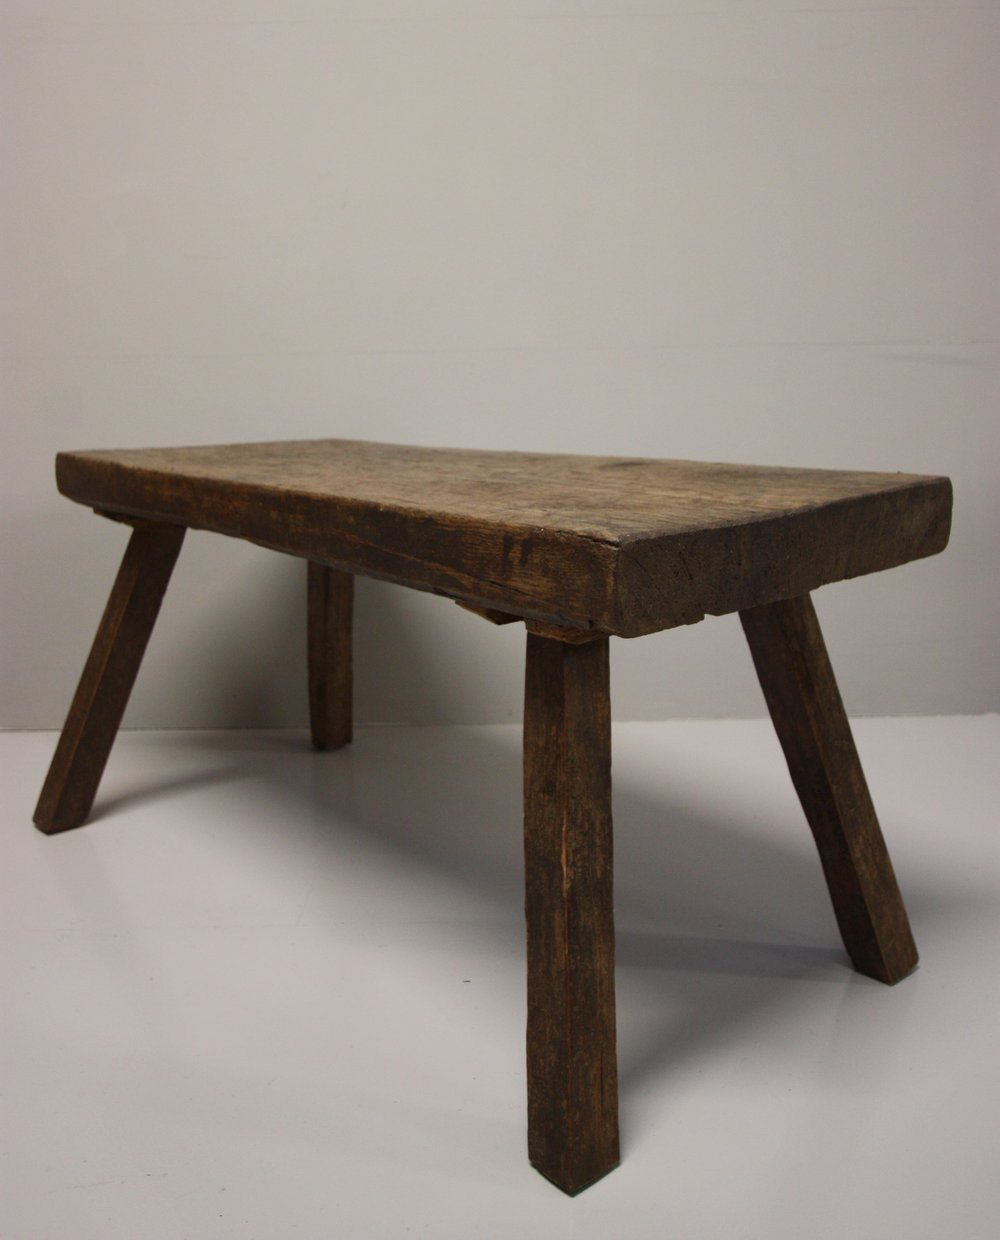 19th century antique pig bench coffee table